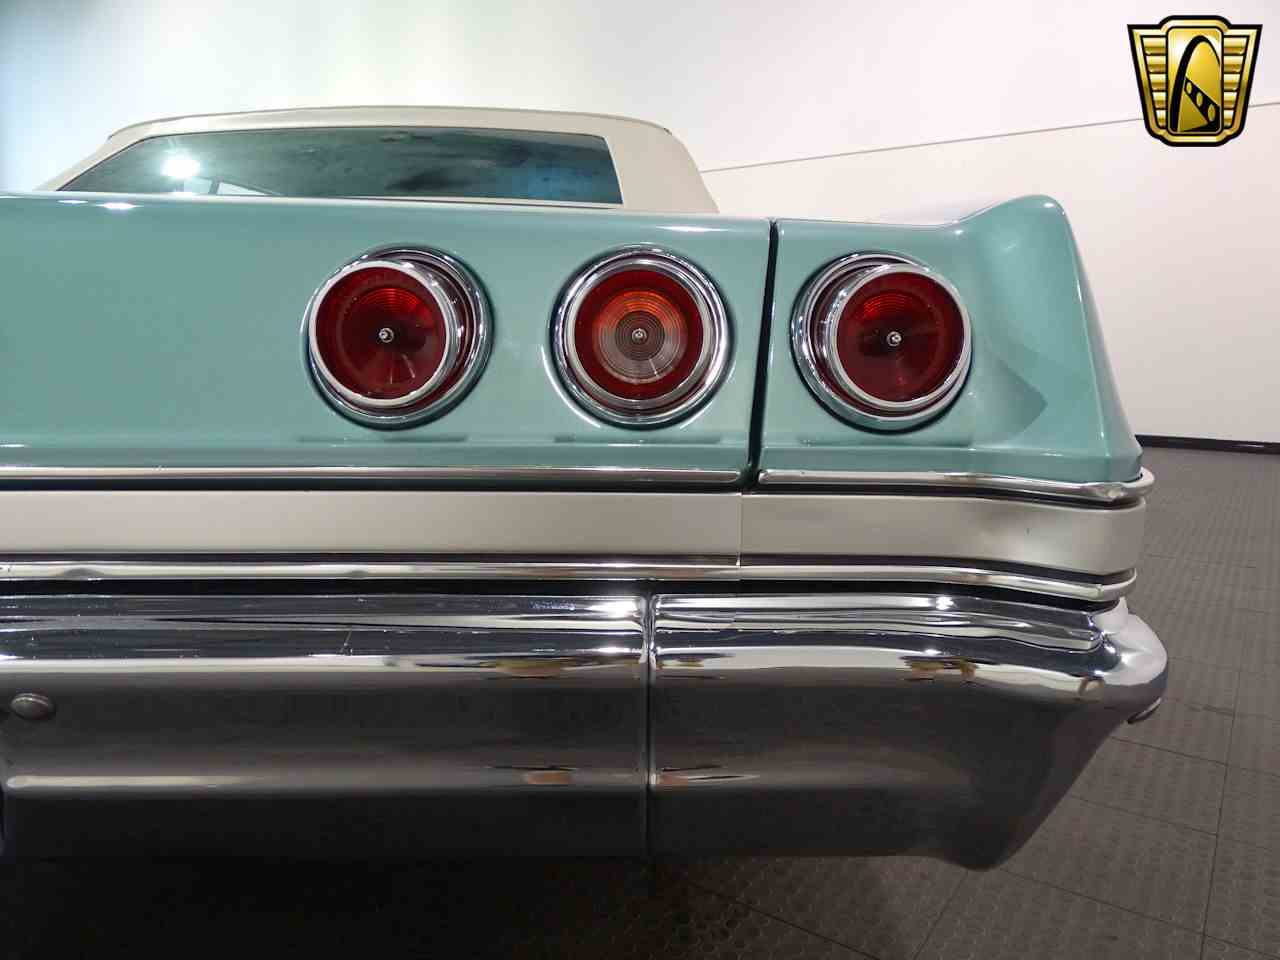 Large Picture of 1965 Impala located in Indianapolis Indiana - $34,995.00 Offered by Gateway Classic Cars - Indianapolis - L5YV